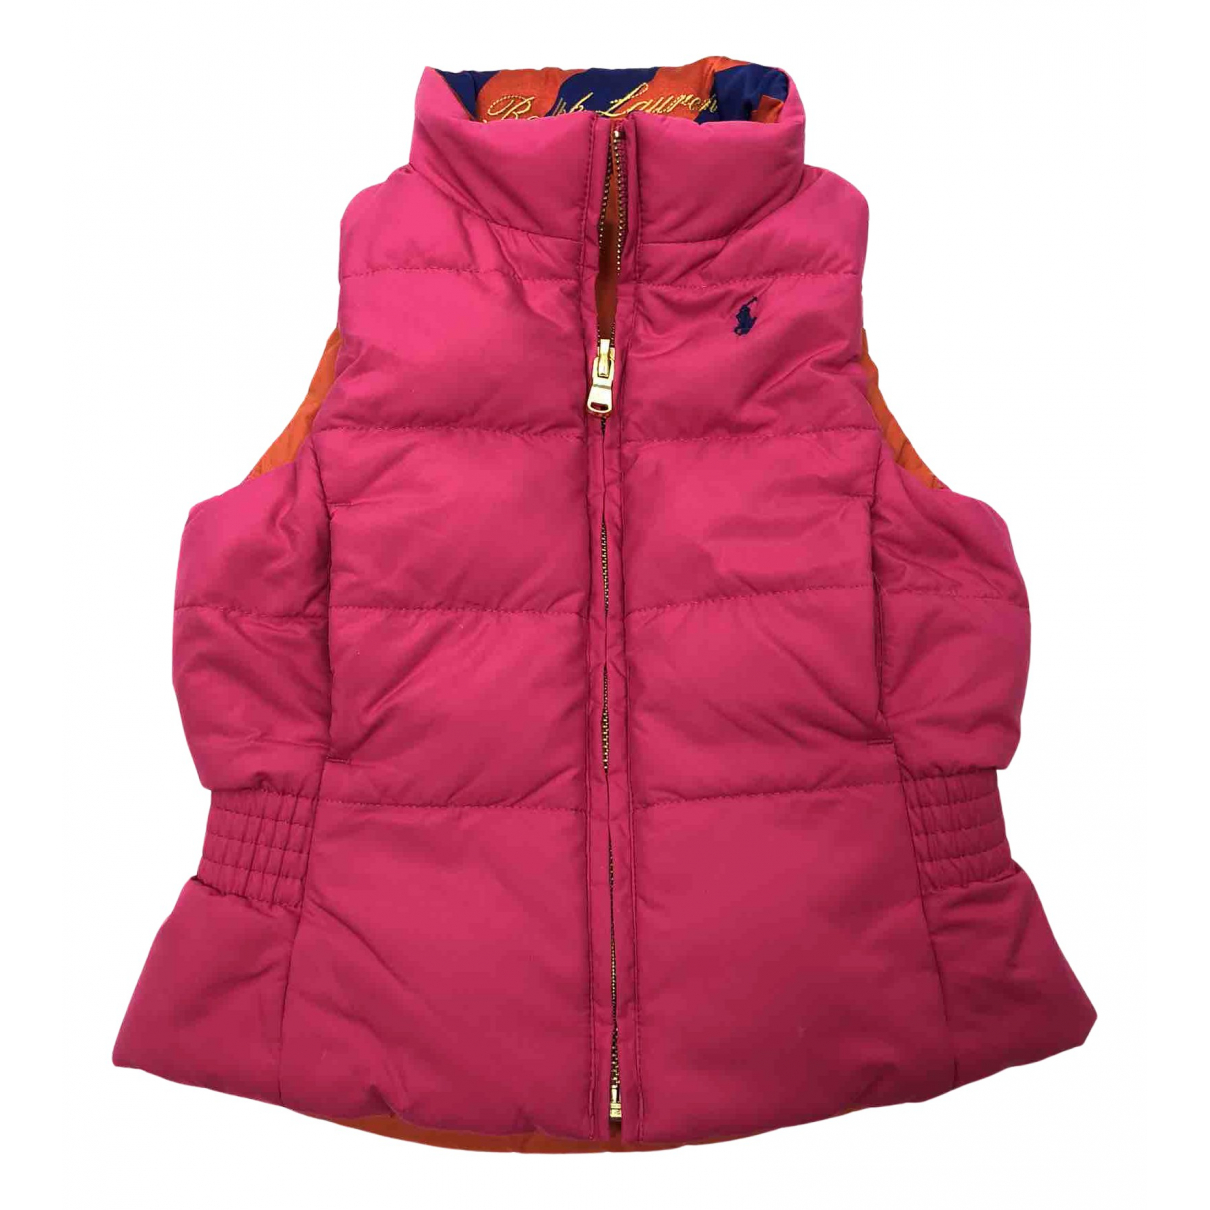 Polo Ralph Lauren N Pink jacket & coat for Kids 3 years - up to 98cm FR